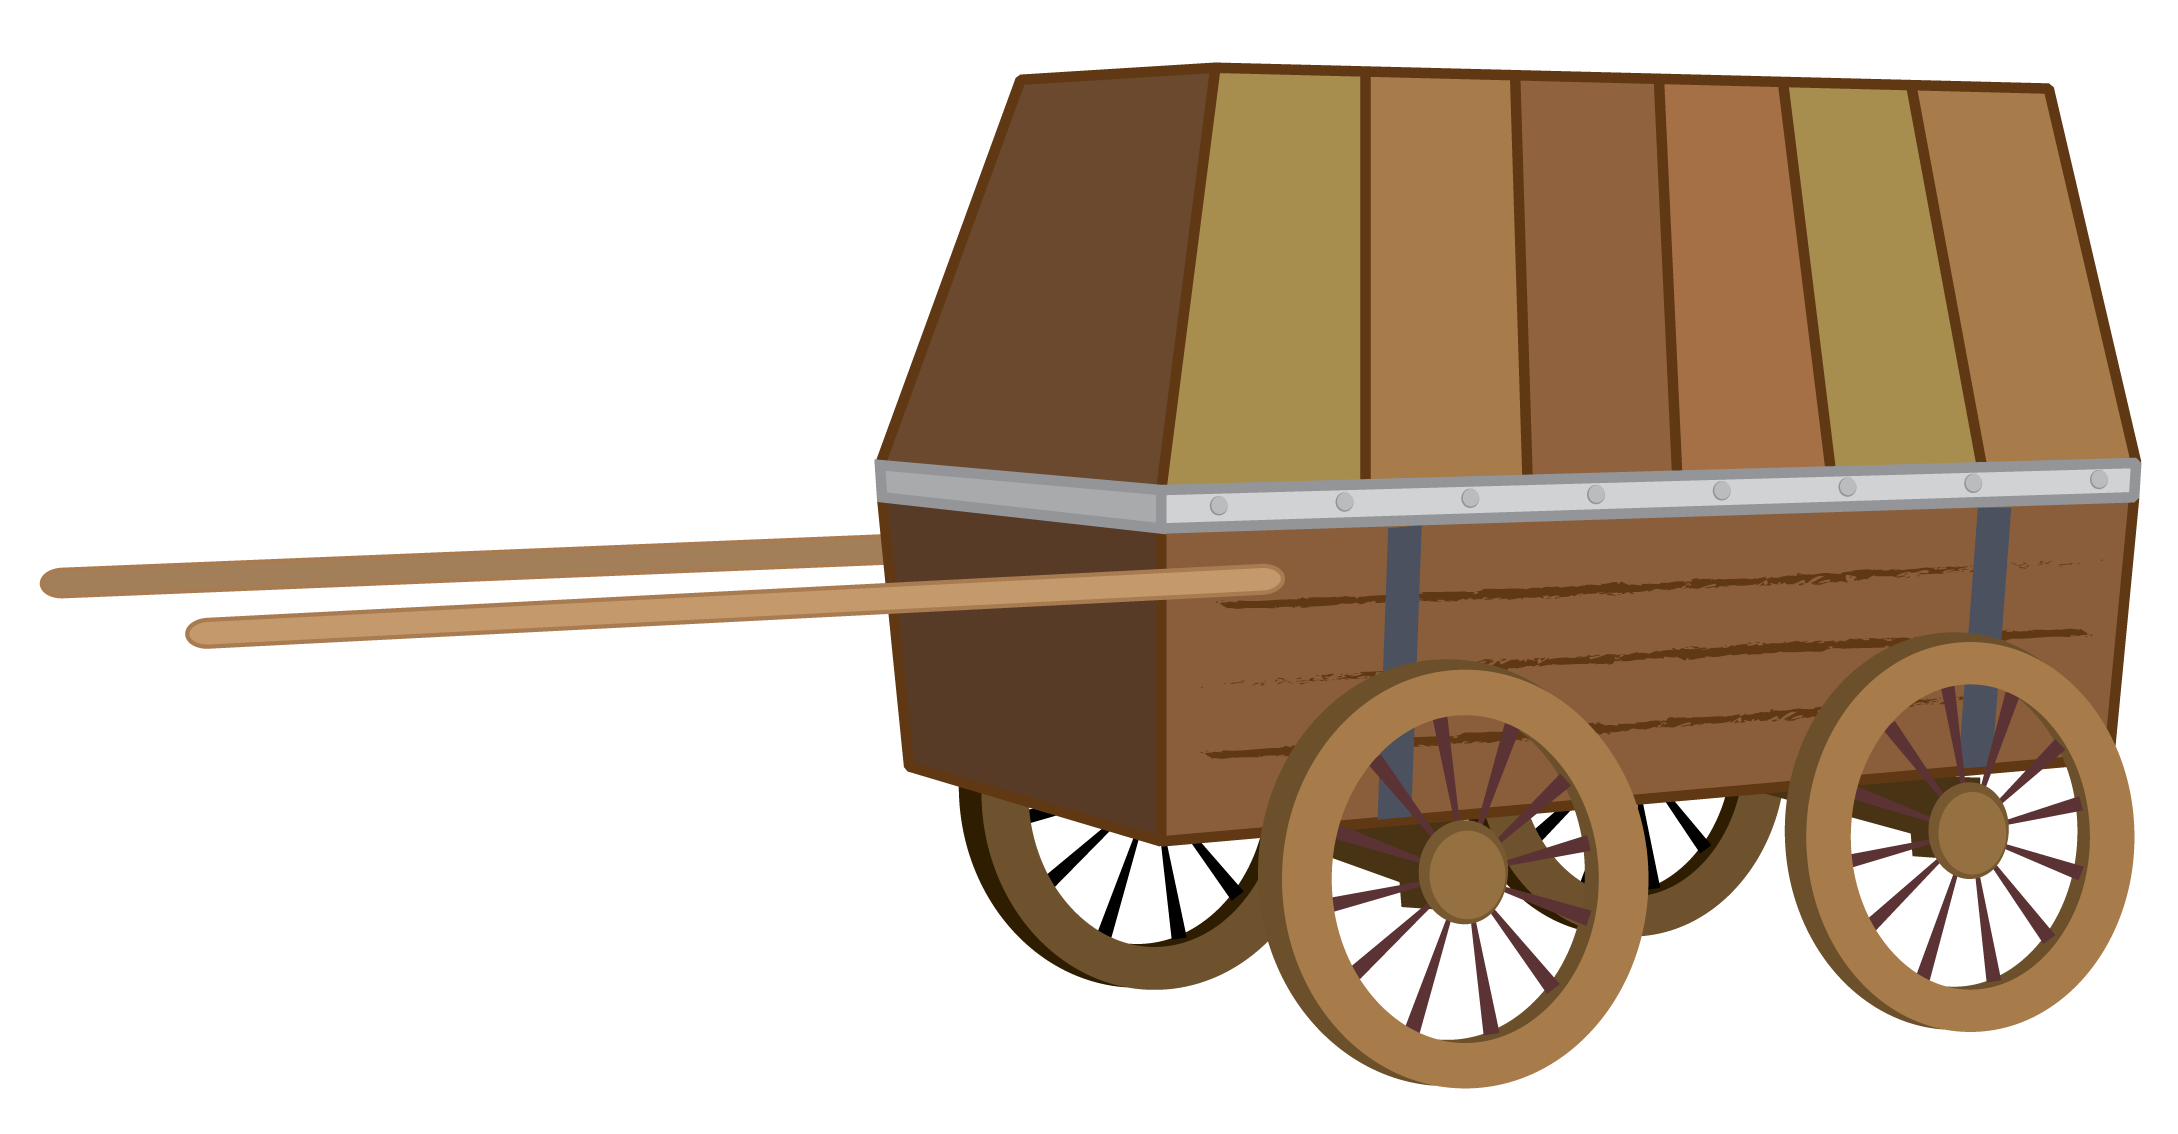 . Wagon clipart little red wagon